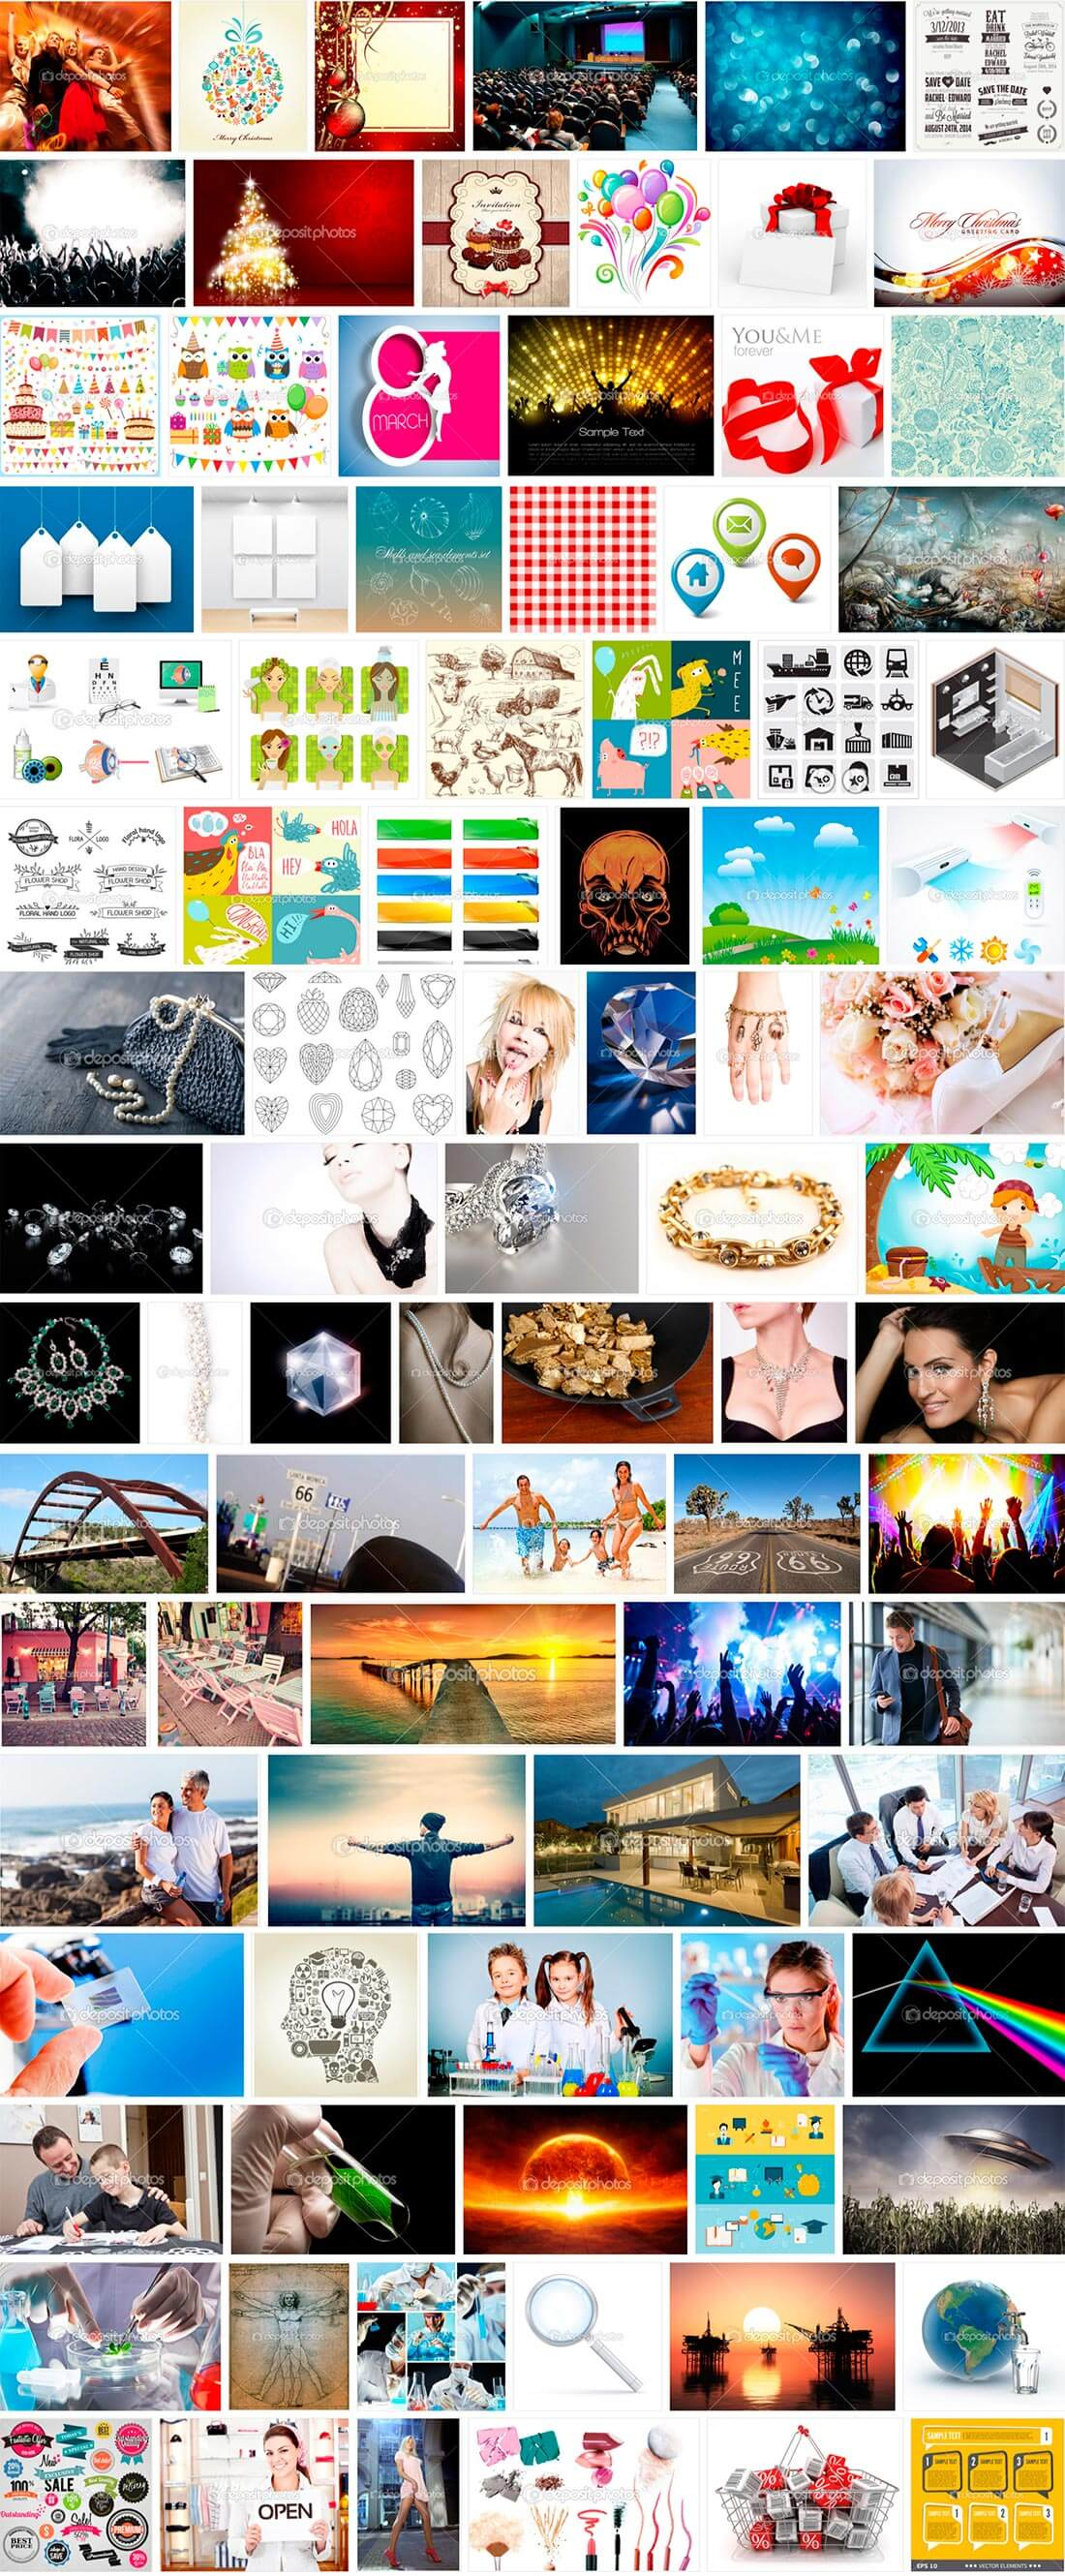 Massive Discount - 50 Million Designers Stock Photos in Just 99 Dollars - Preview